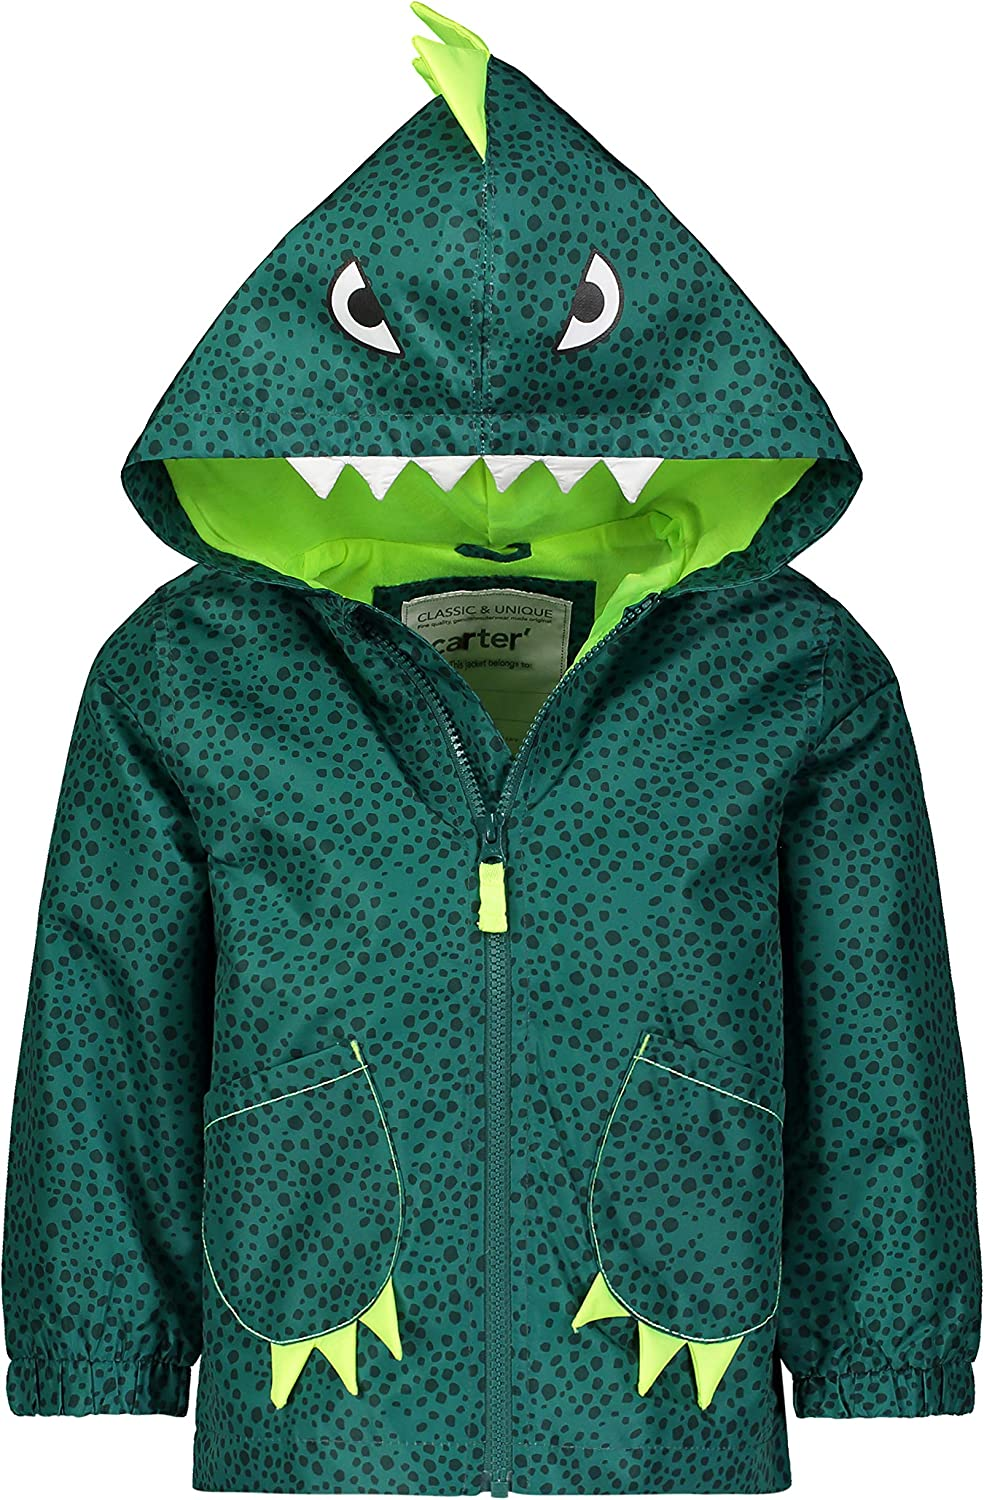 Carters Baby Boys Critter Rainslicker Lightweight Rain Jacket 12MO Green Dino